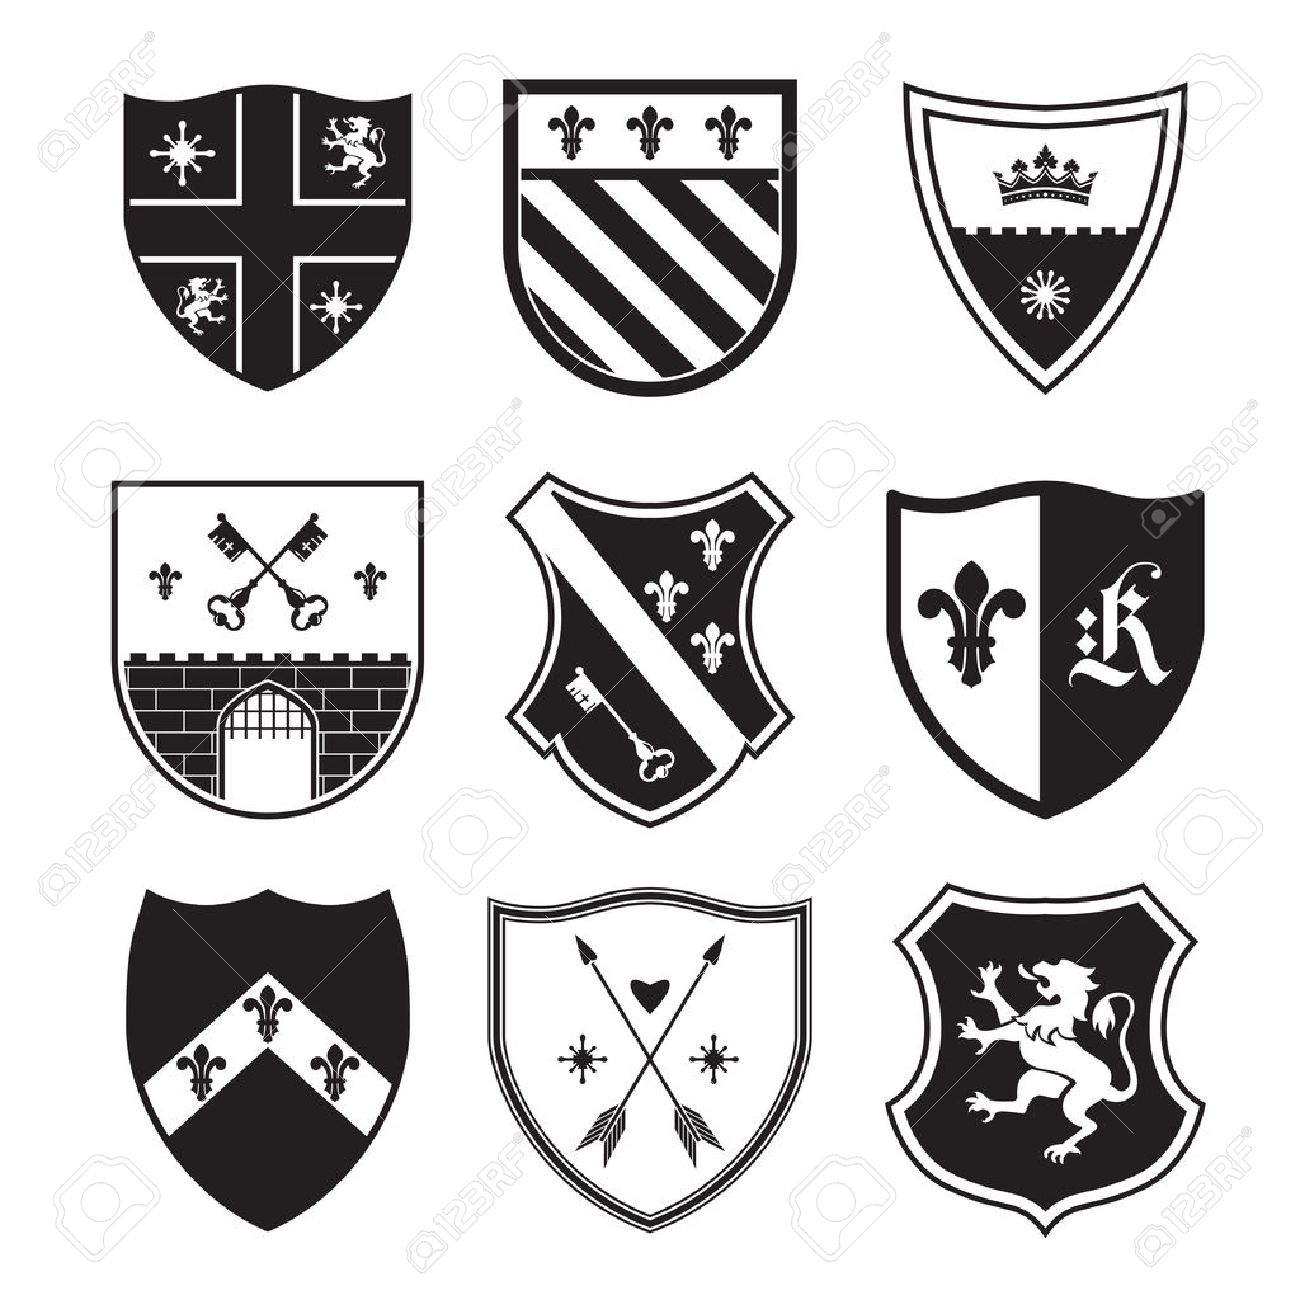 Shield silhouettes for signs and symbols (safety, security, military,